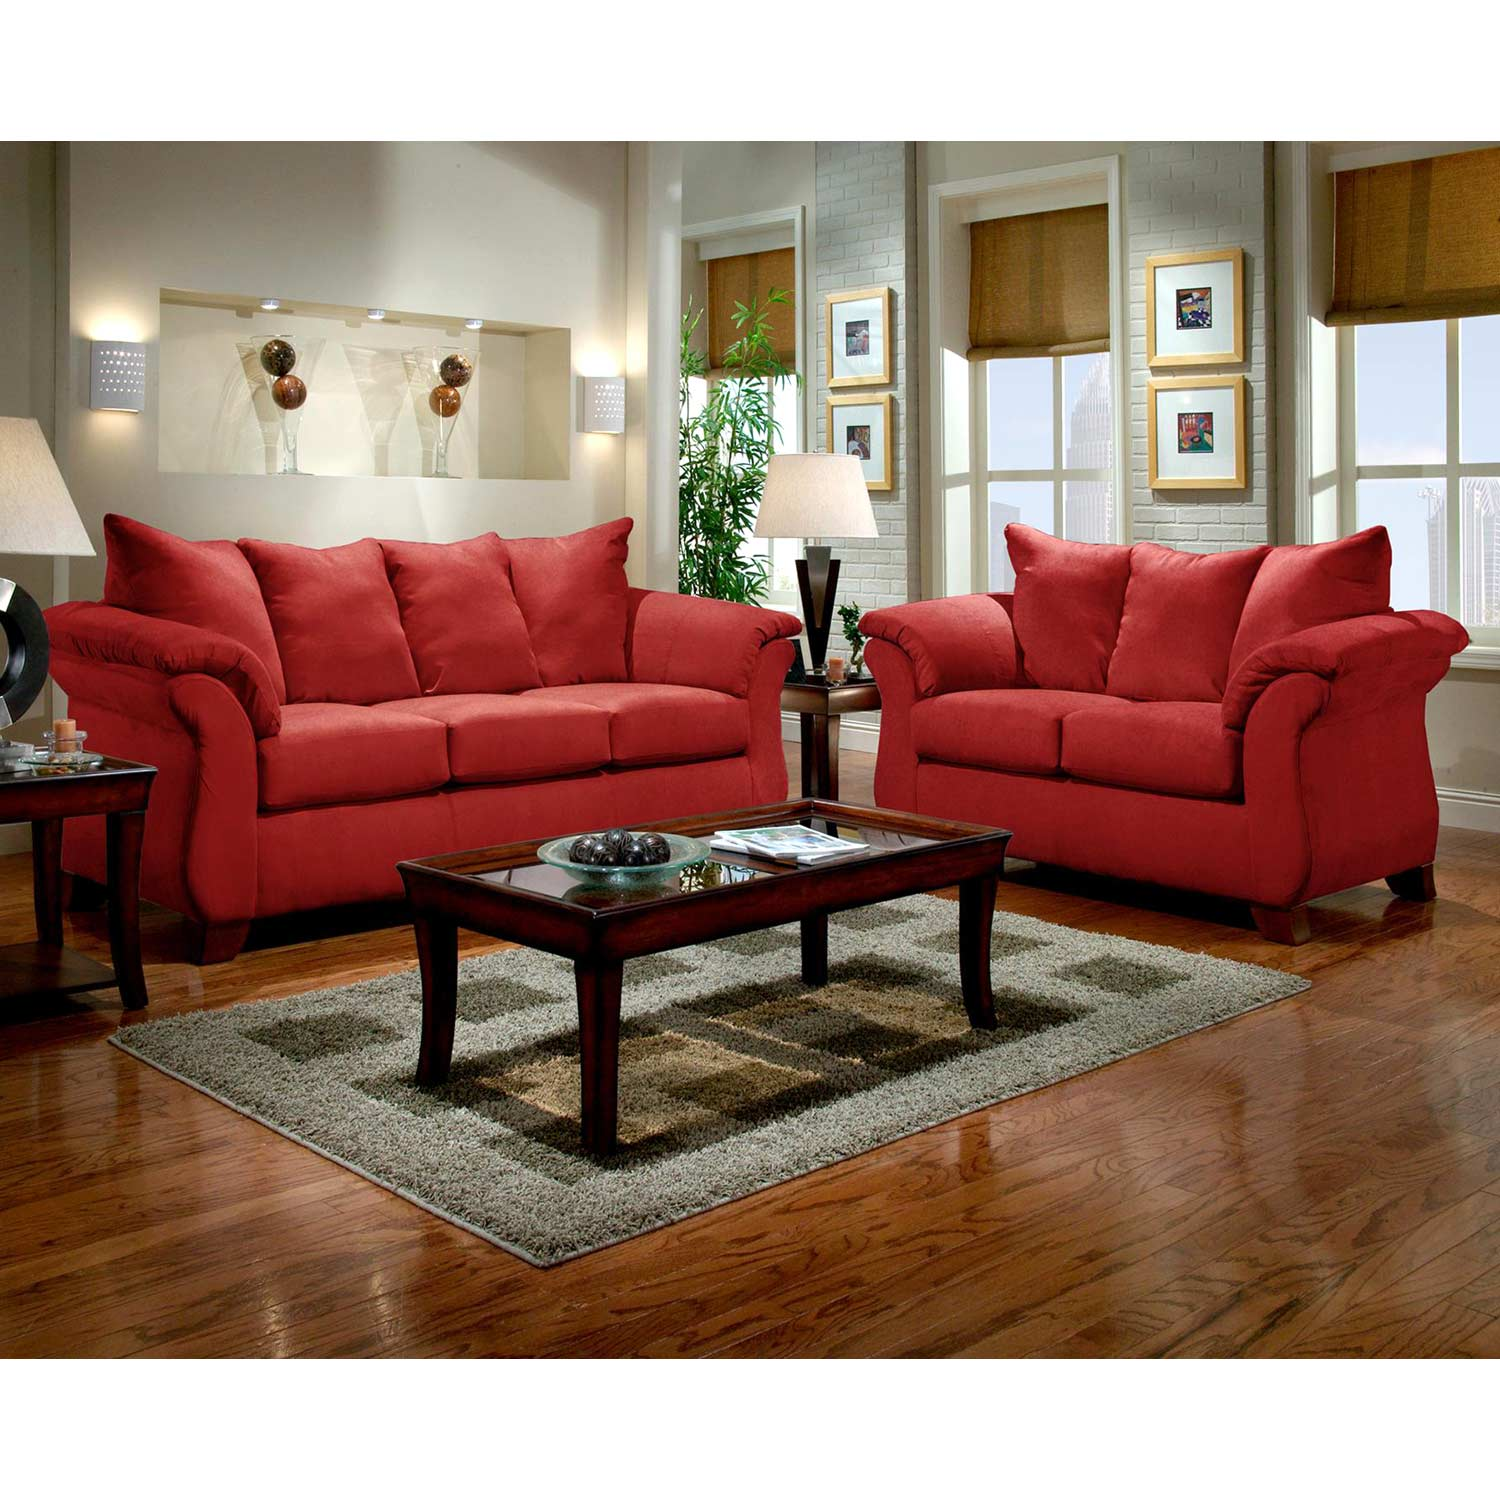 Payton Pillow Back Loveseat - Red Brick Microfiber - CHF-6702-RB